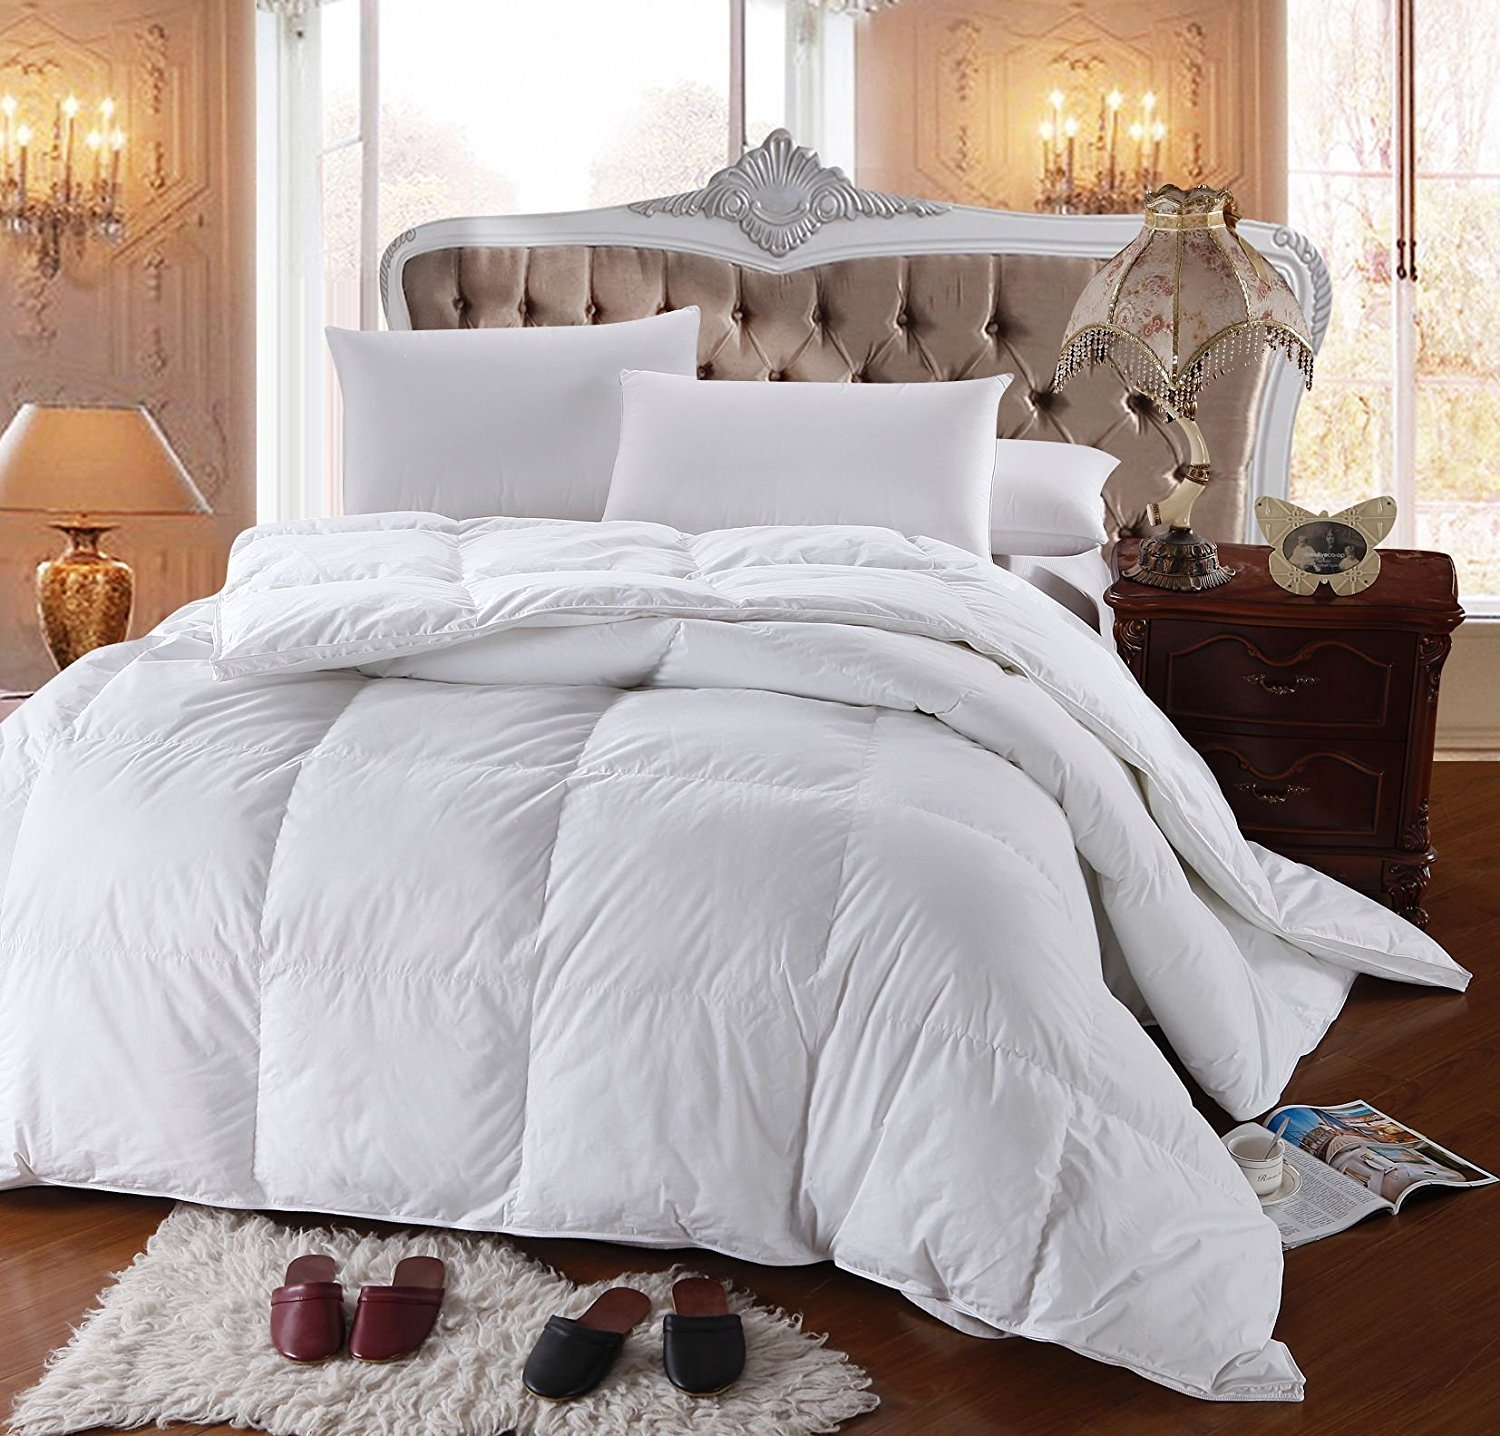 Royal-Hotels-Thread-Alternative-Comforter